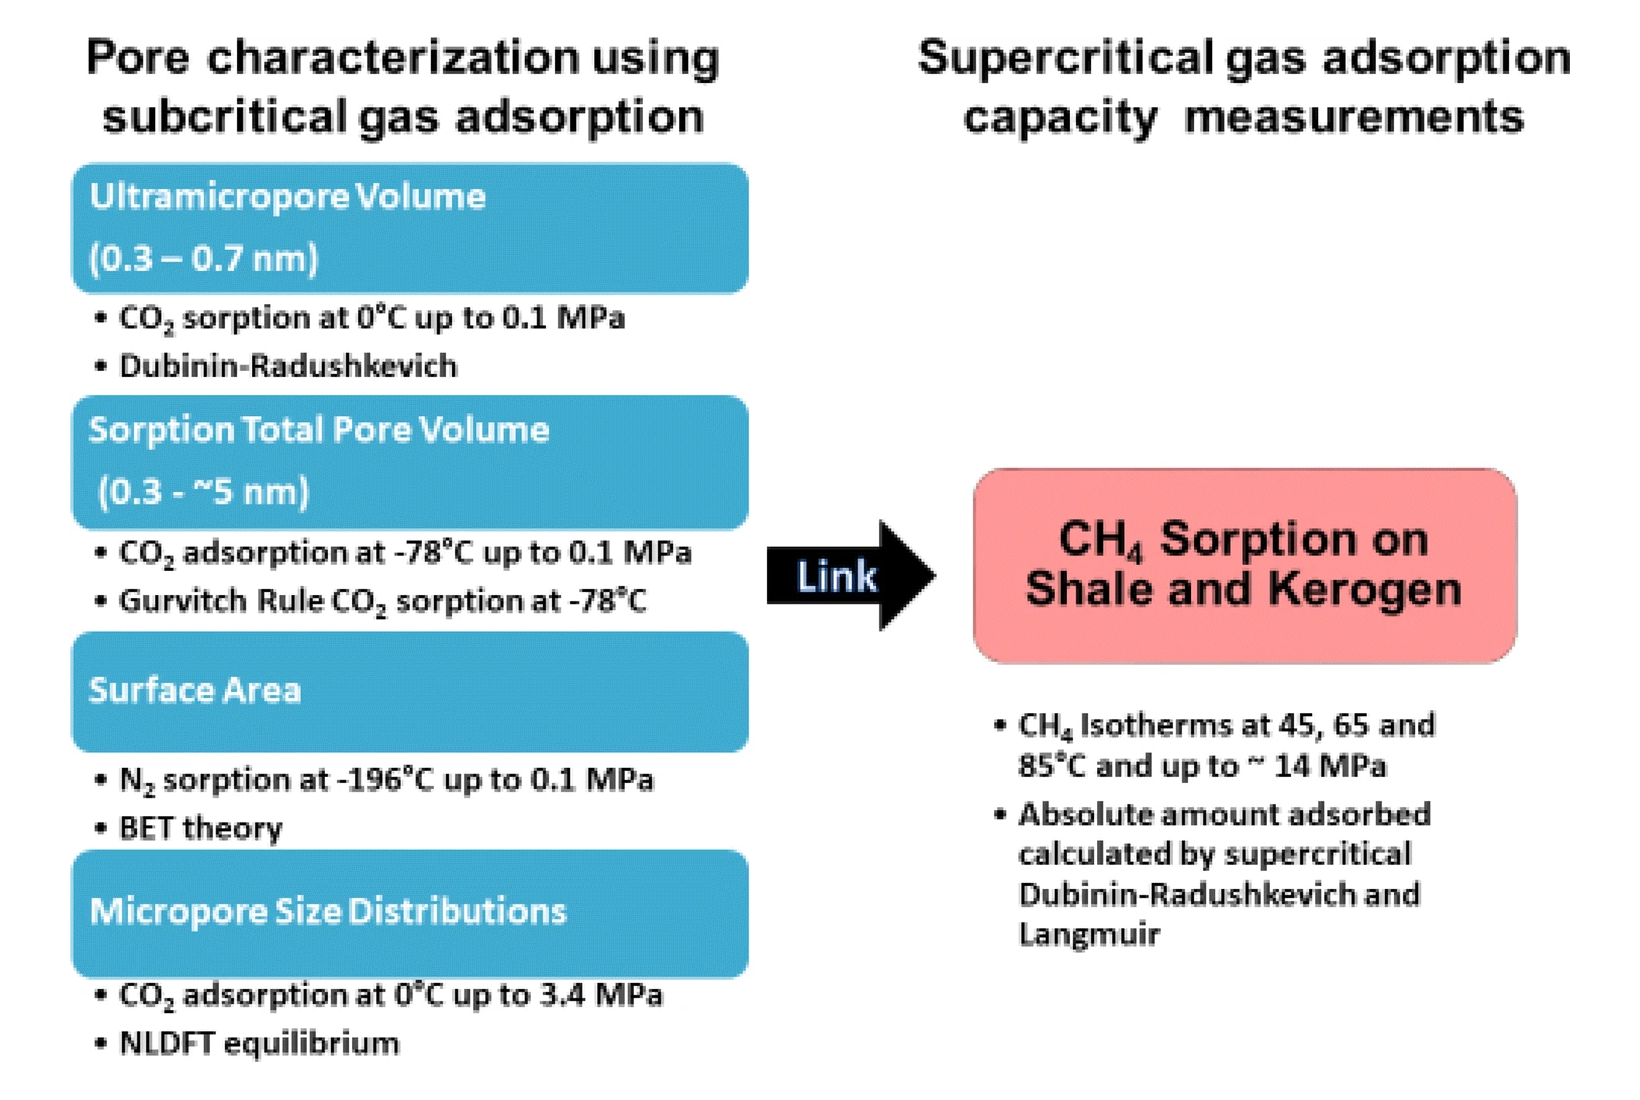 Summary of shale characterization using gas adsorption techniques